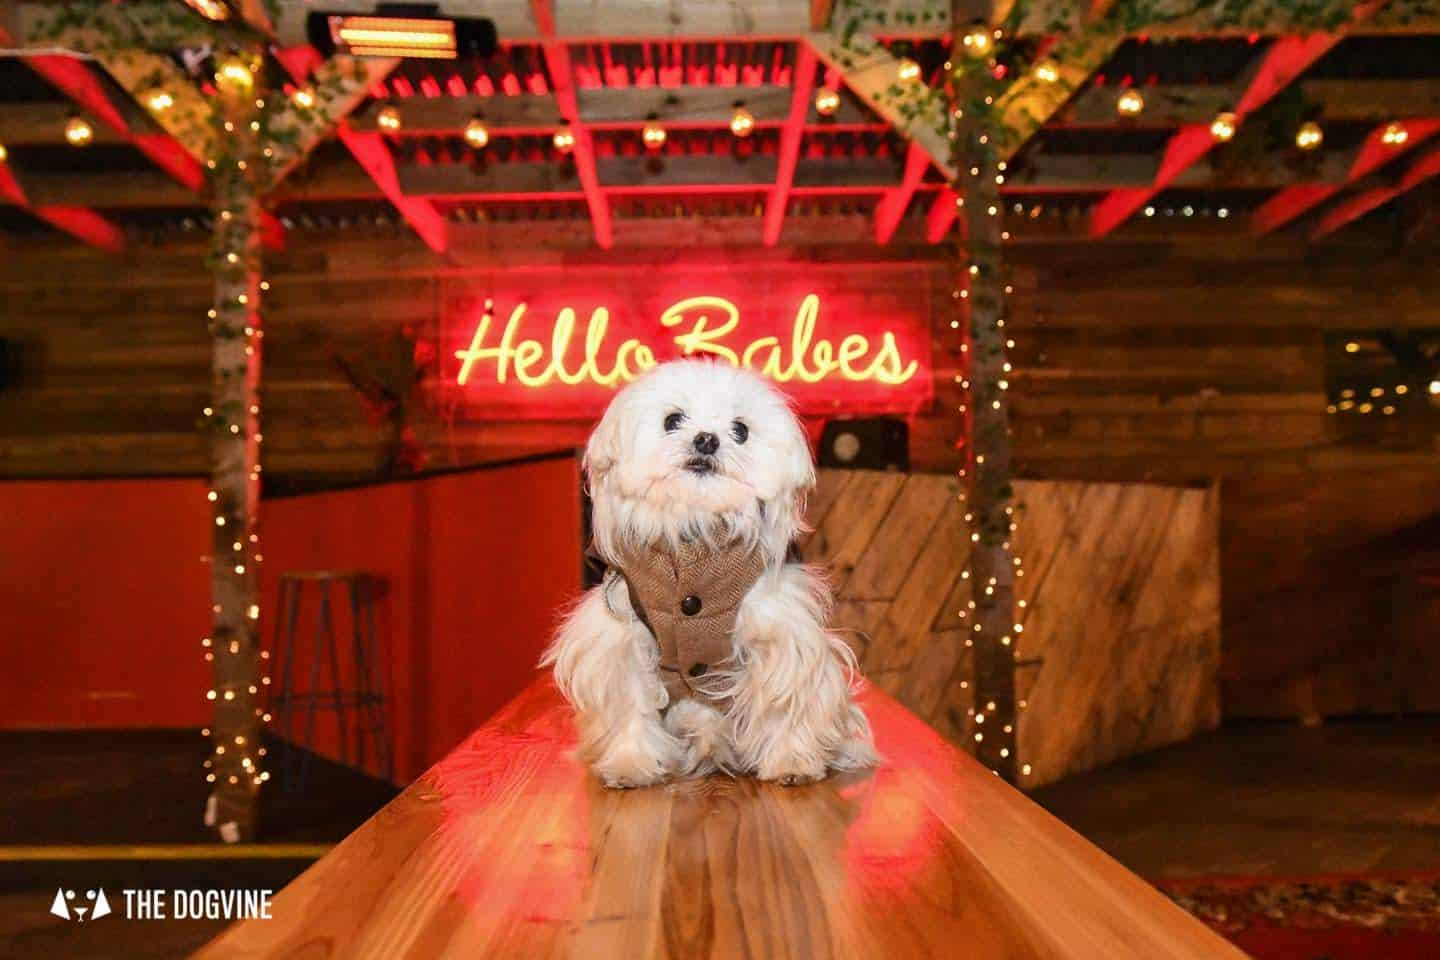 5 Reasons To Go To The Dog-friendly Bussey Rooftop Bar This Winter 8